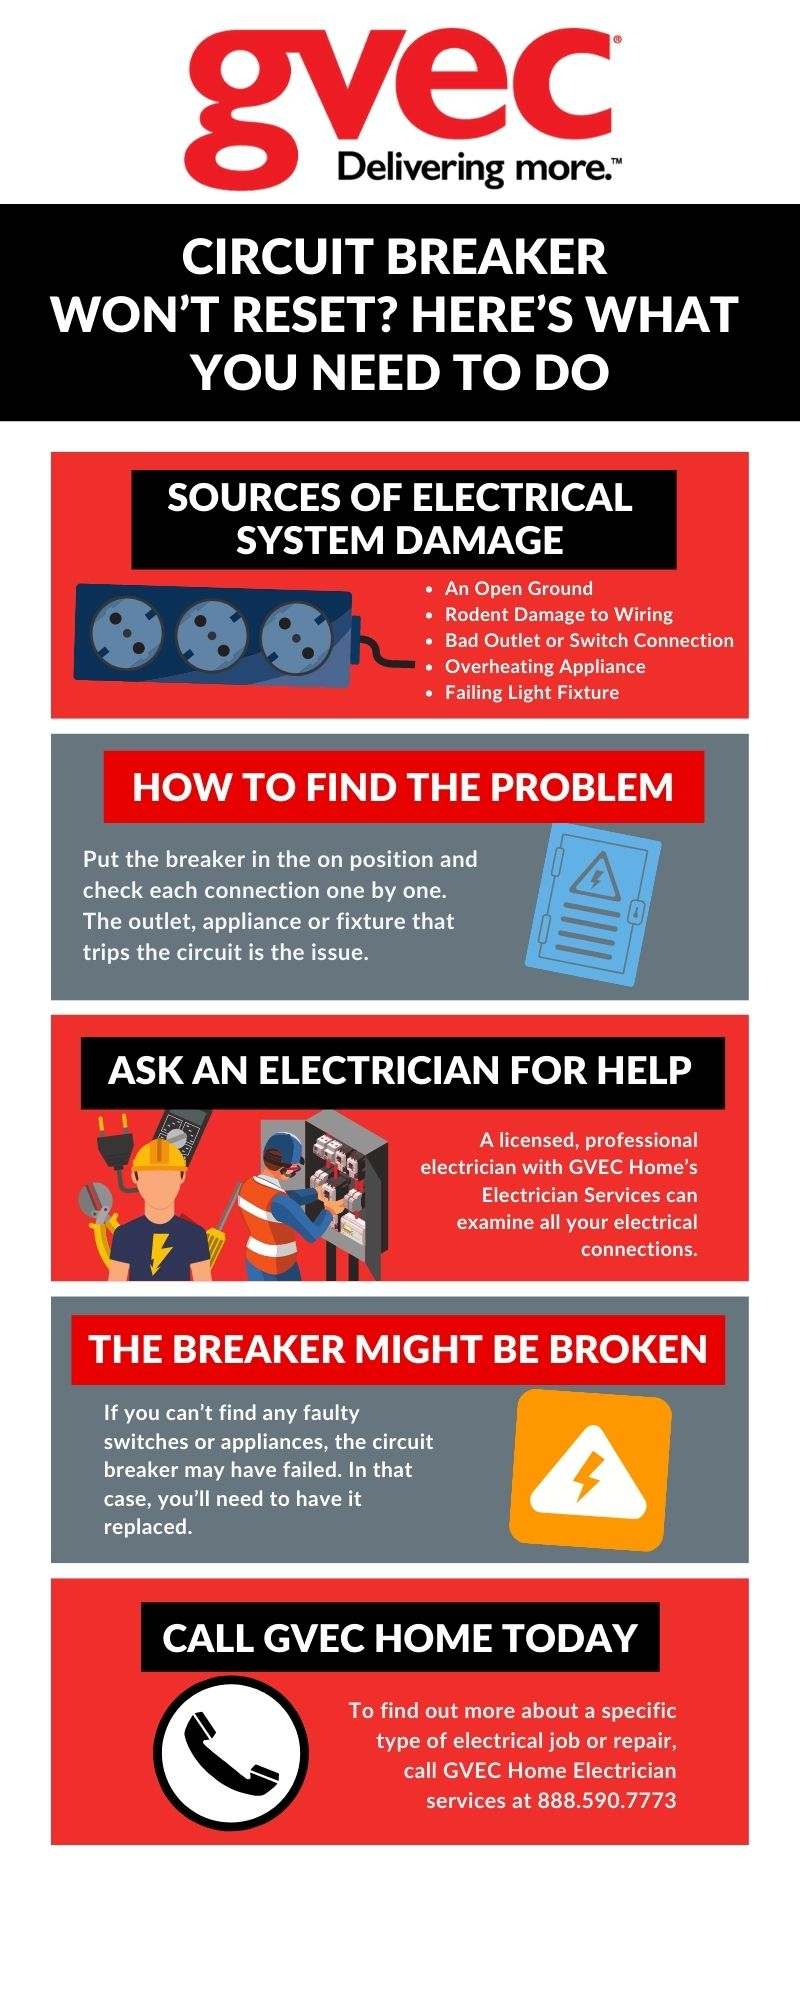 Circuit Breaker Wont Reset? Here's What You Need to Do